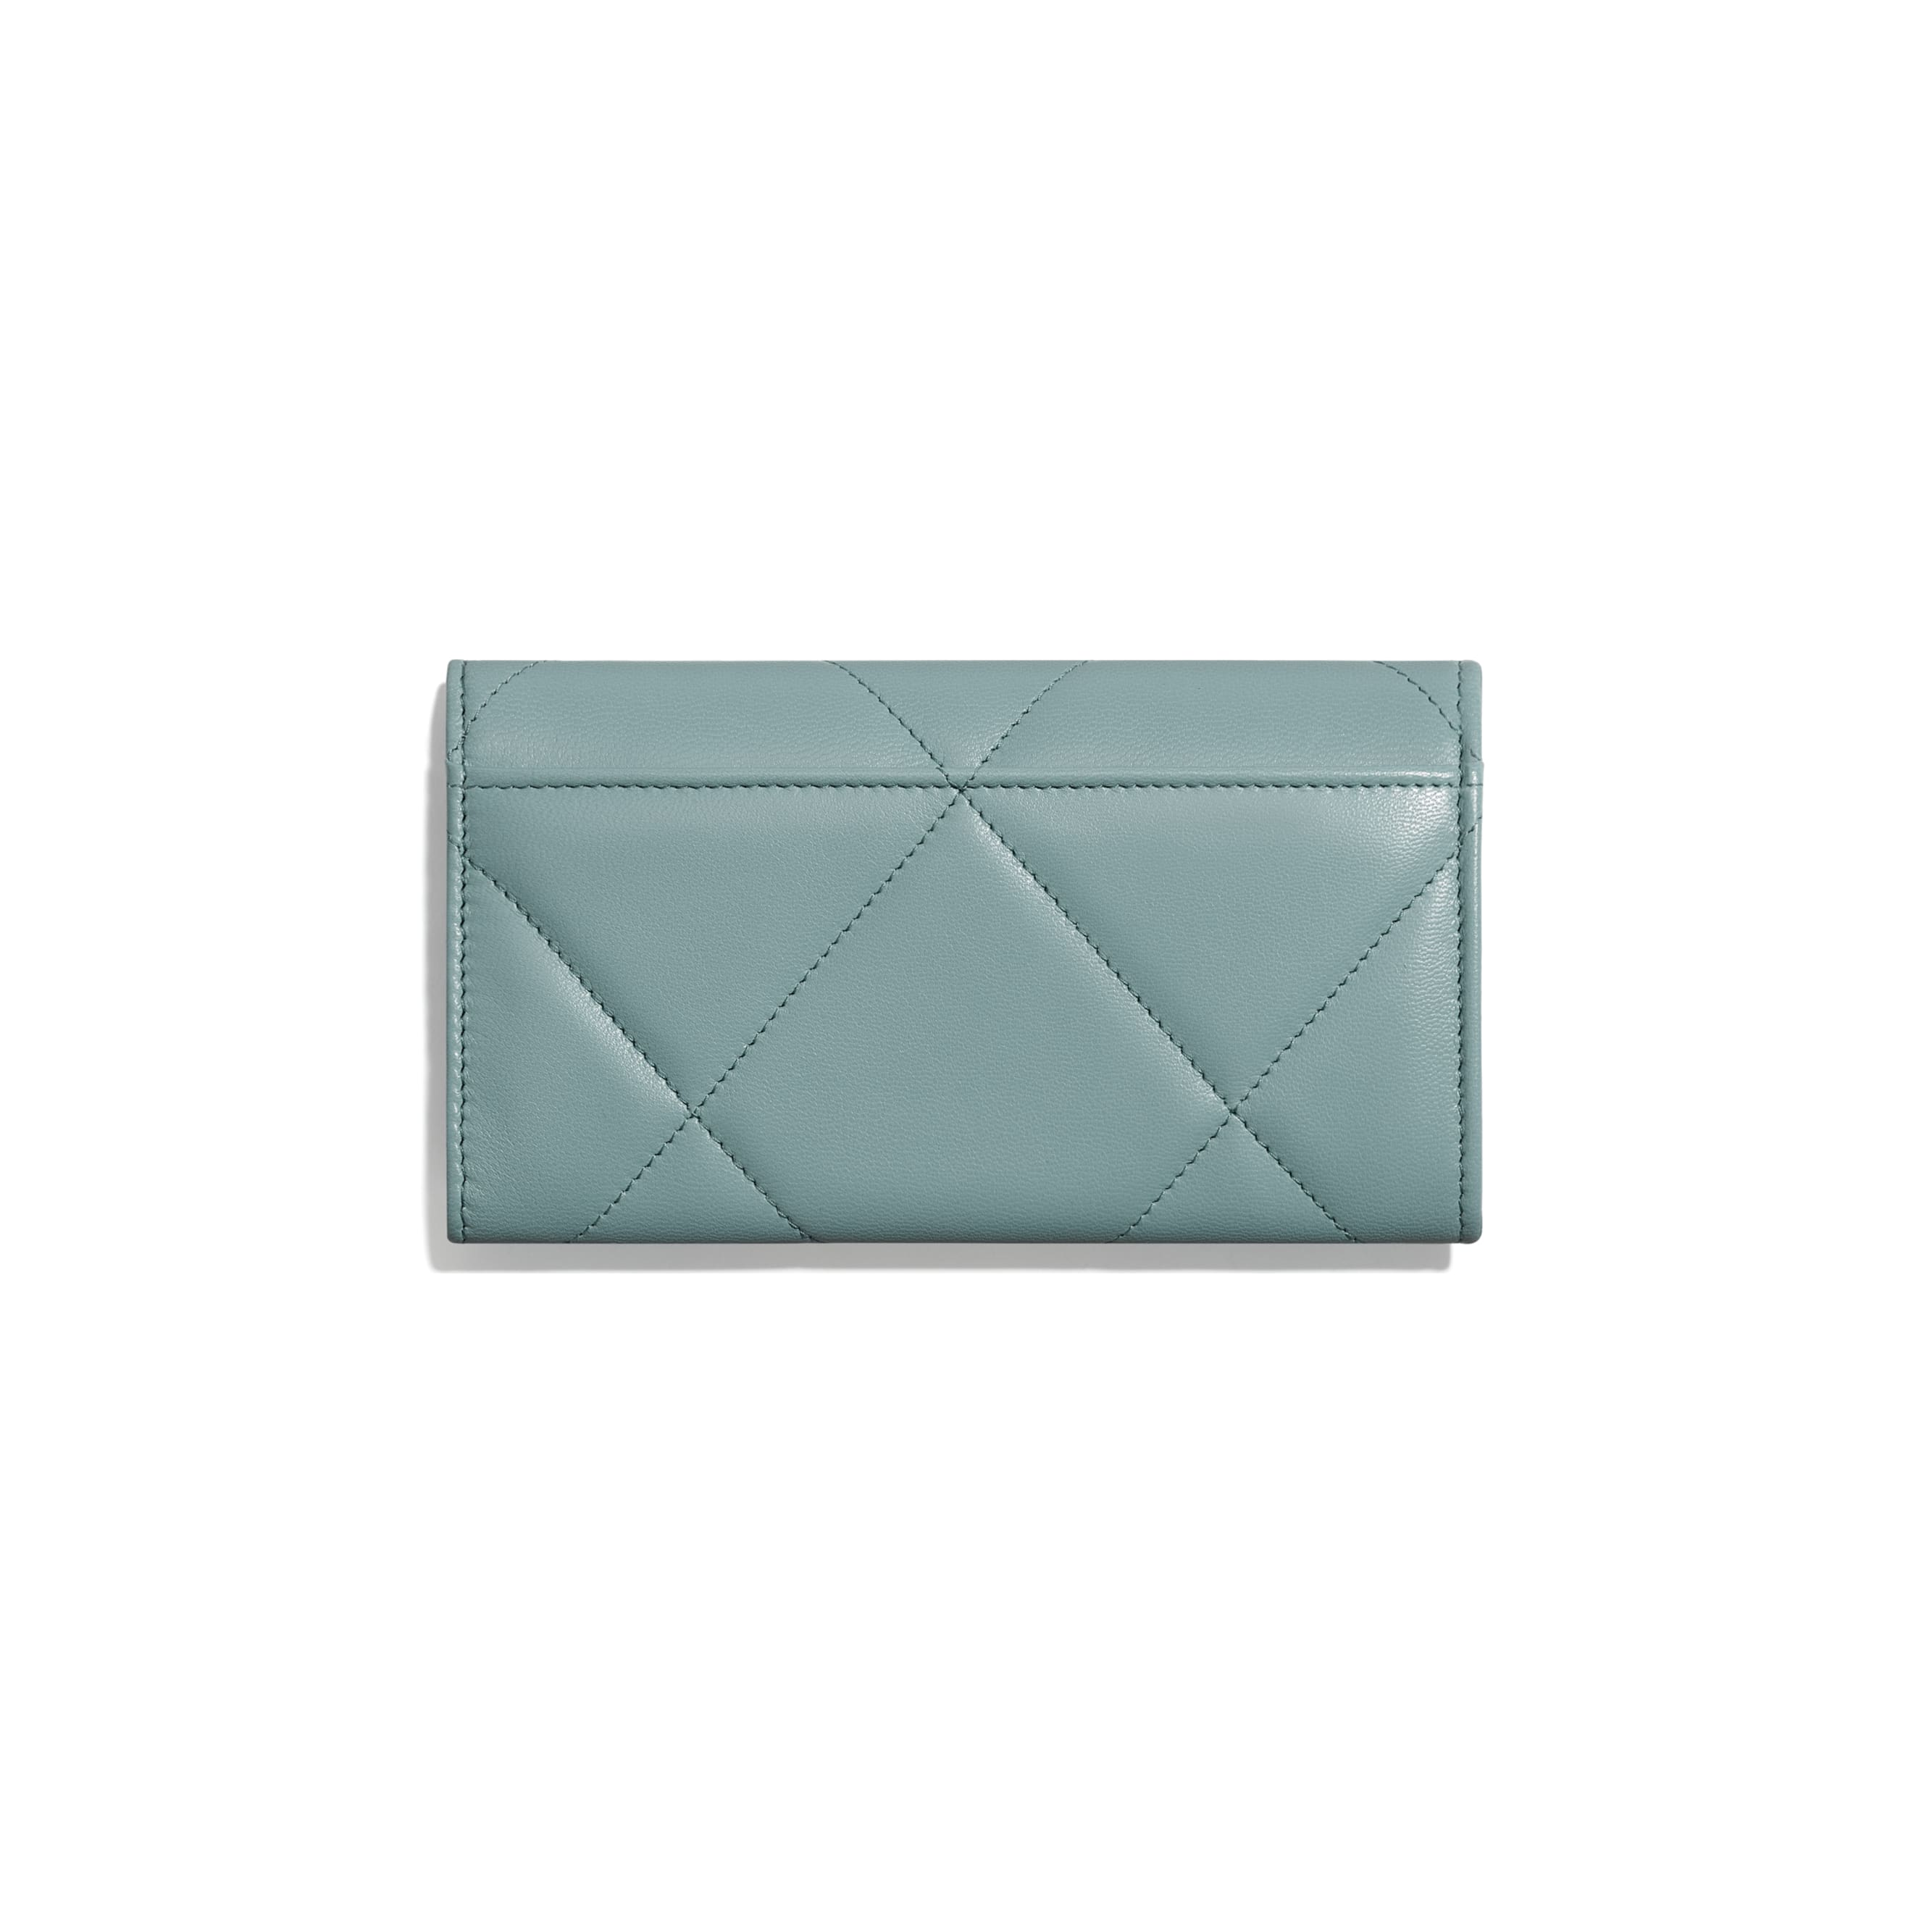 CHANEL 19 Flap Wallet - Blue - Shiny Goatskin, Gold-Tone, Silver-Tone & Ruthenium-Finish Metal - Alternative view - see standard sized version